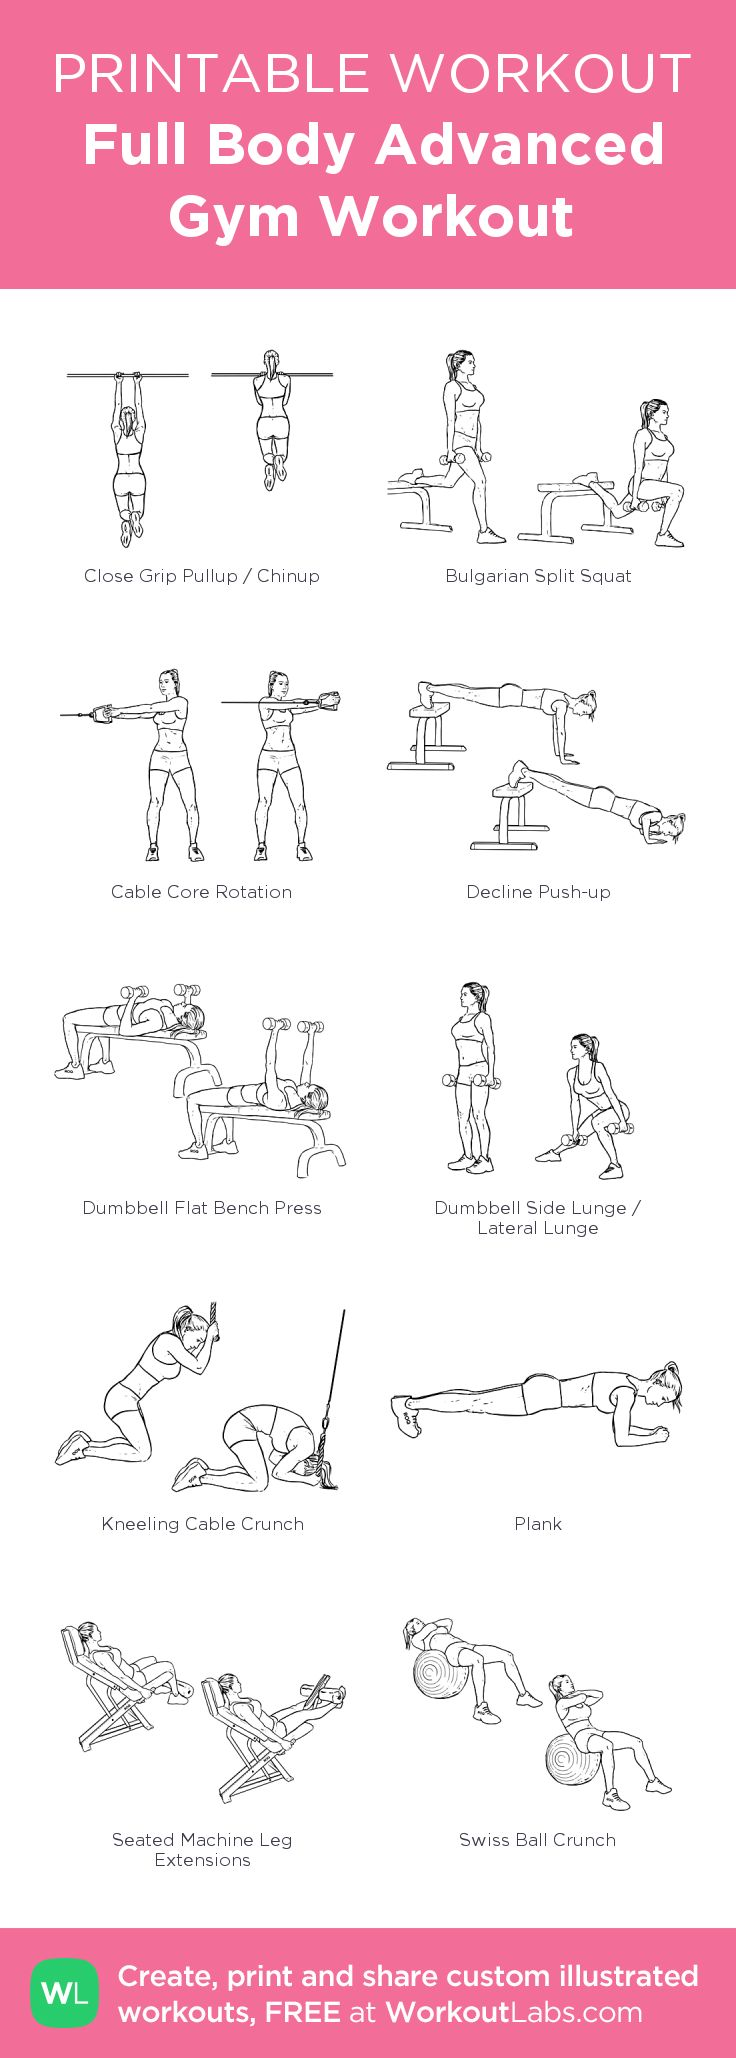 Gym Workout Names List With Pictures Pdf